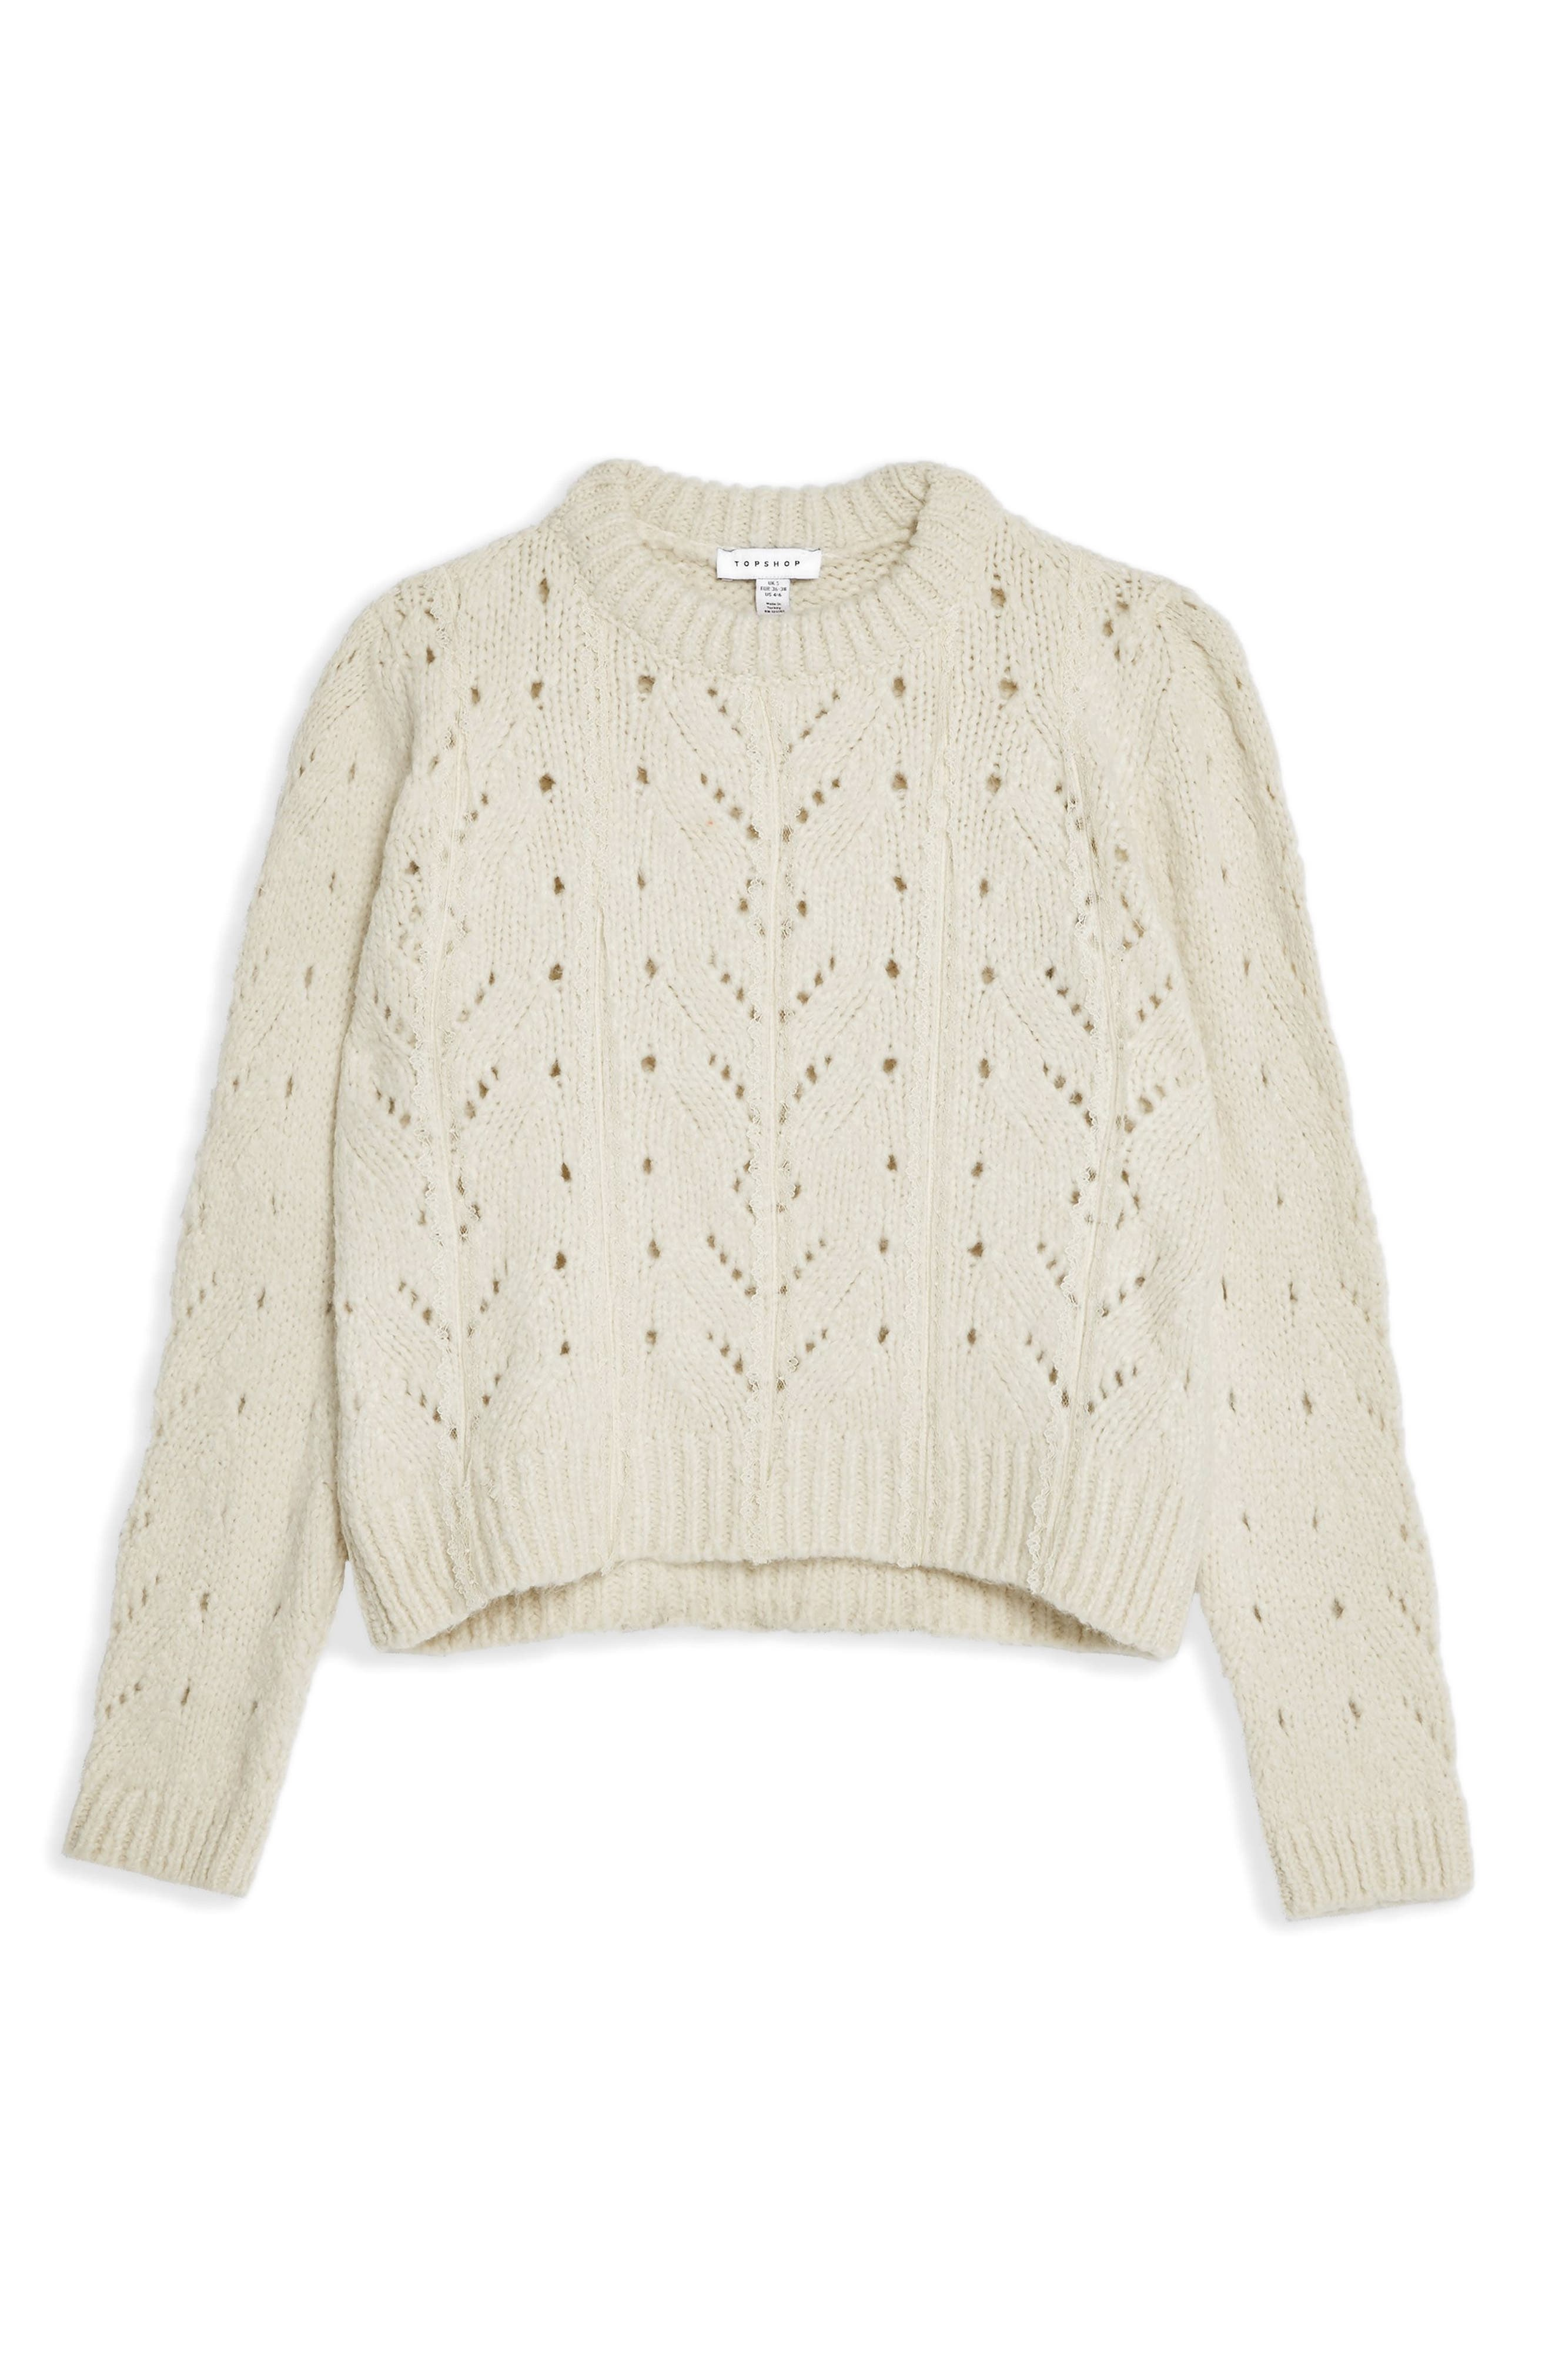 TOPSHOP, Pointelle Lace Sweater, Alternate thumbnail 3, color, IVORY